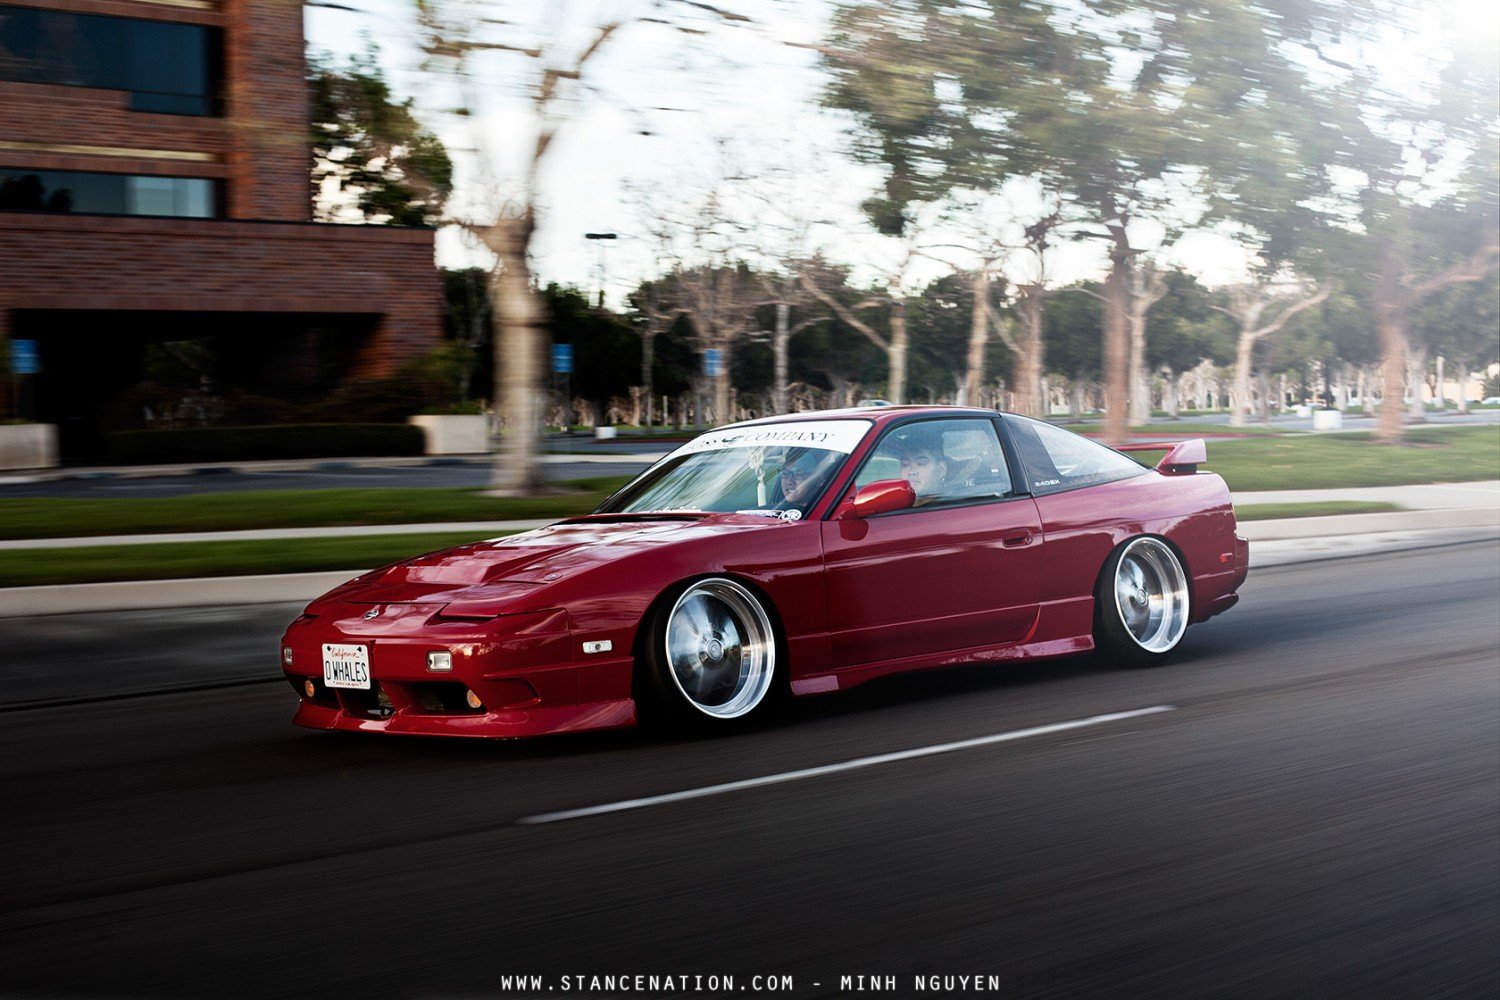 Spotlight Masahiro Sugawaras Nissan S13 Silvia in addition Forklift Part Nissan QD32 Engine 10100 60172374832 further 1402 K Series Engine Family Breakdown further That New Rocket Bunny Gtr together with 161862726083. on 2jz motor parts